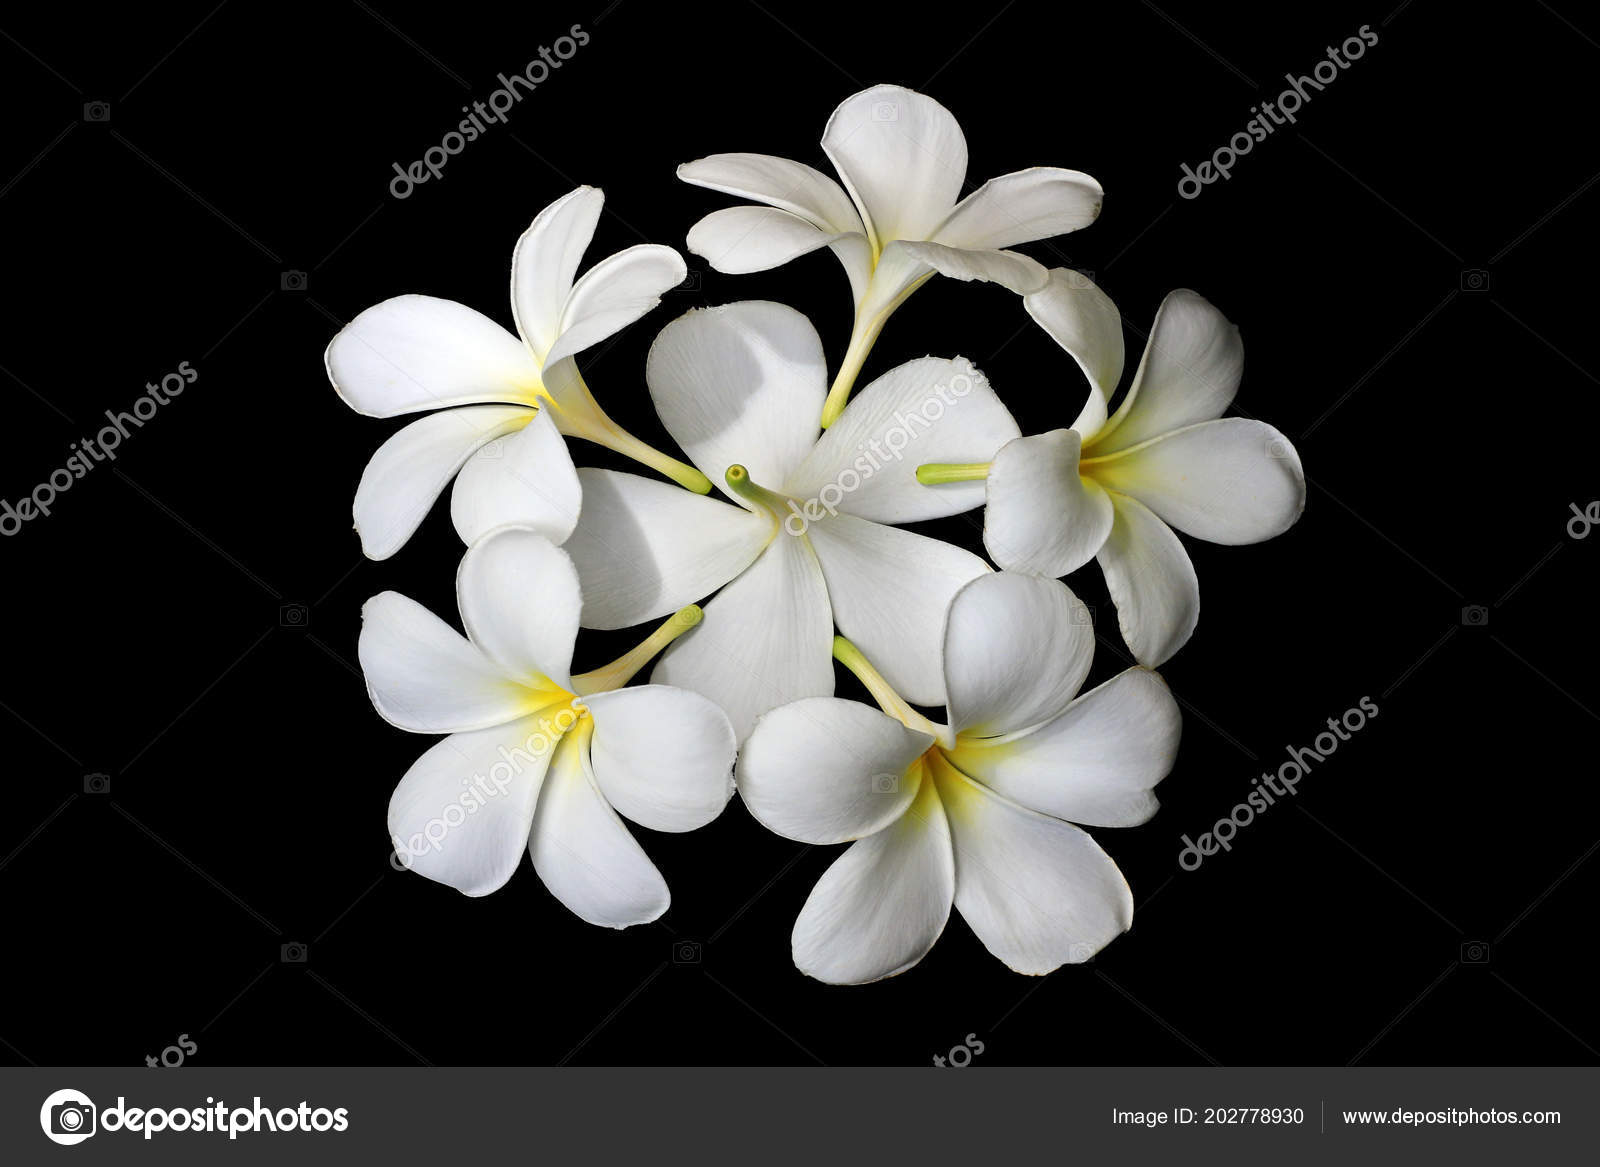 Plumeria flowers black background stock photo raluephoto 202778930 plumeria flowers black background stock photo mightylinksfo